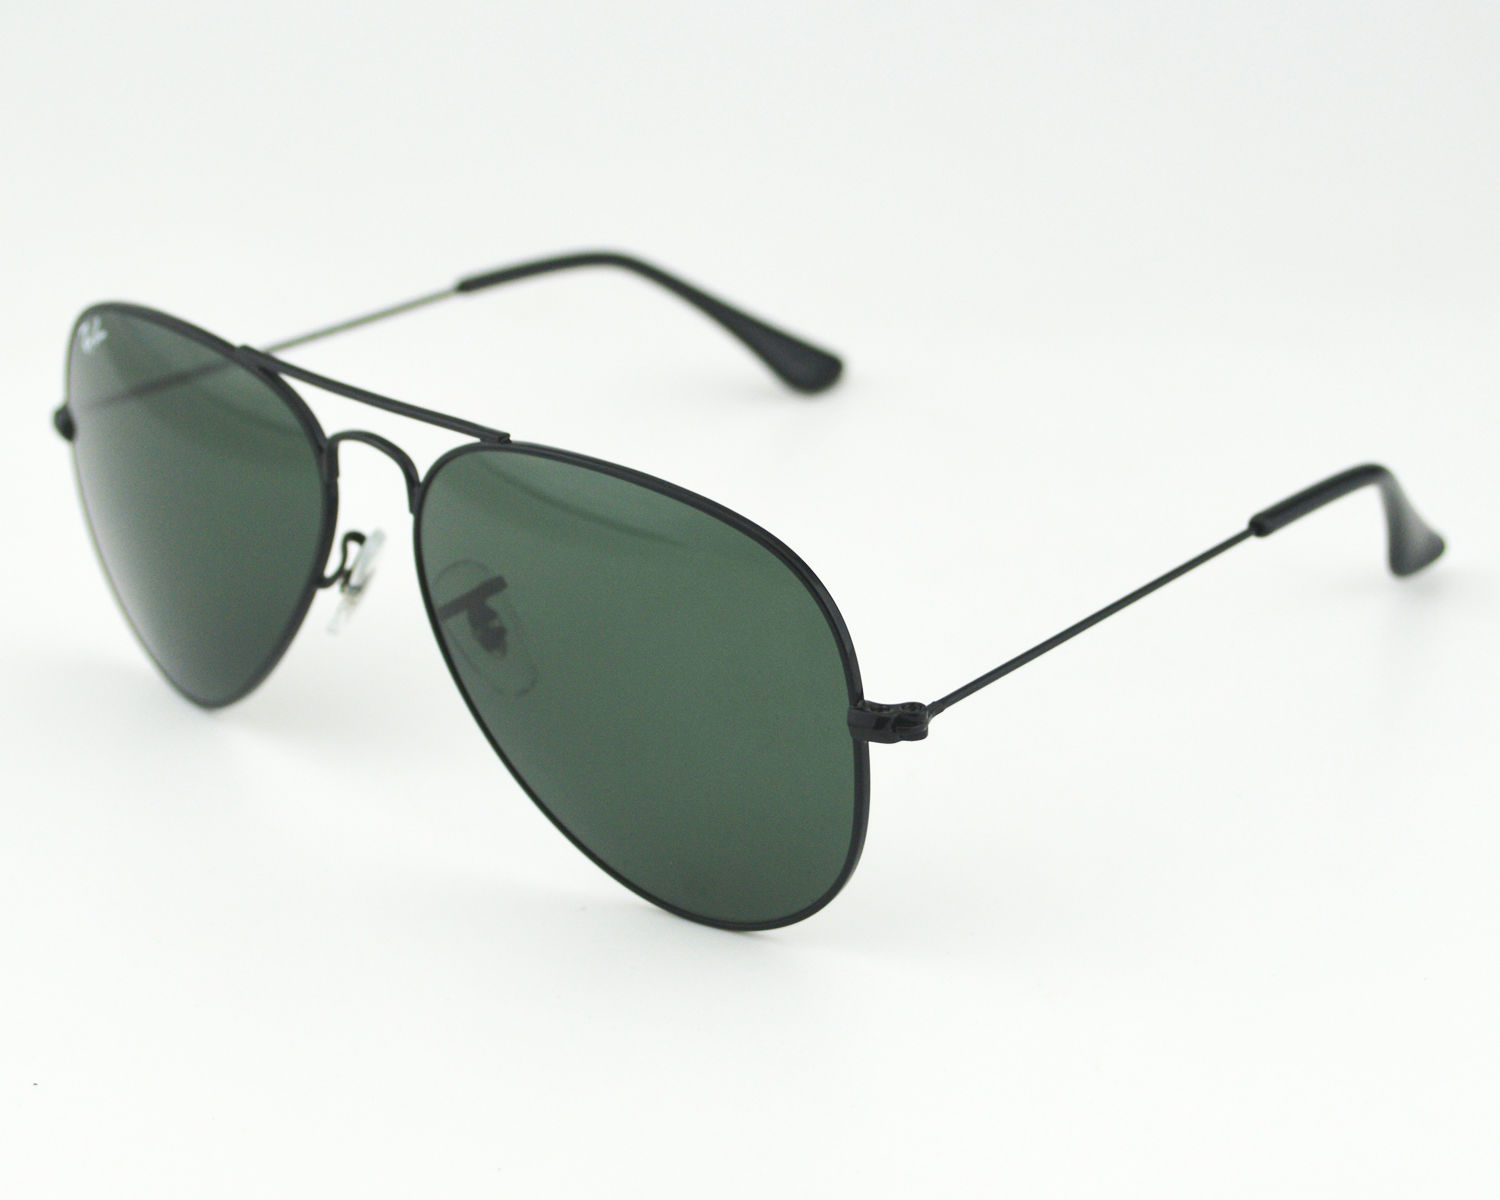 63fe5a9e64 Ray-Ban RB 3025 Aviator Classic Large Metal L2823 Black Frame Green Classic  G-15 Lens Unisex Sunglasses 58mm